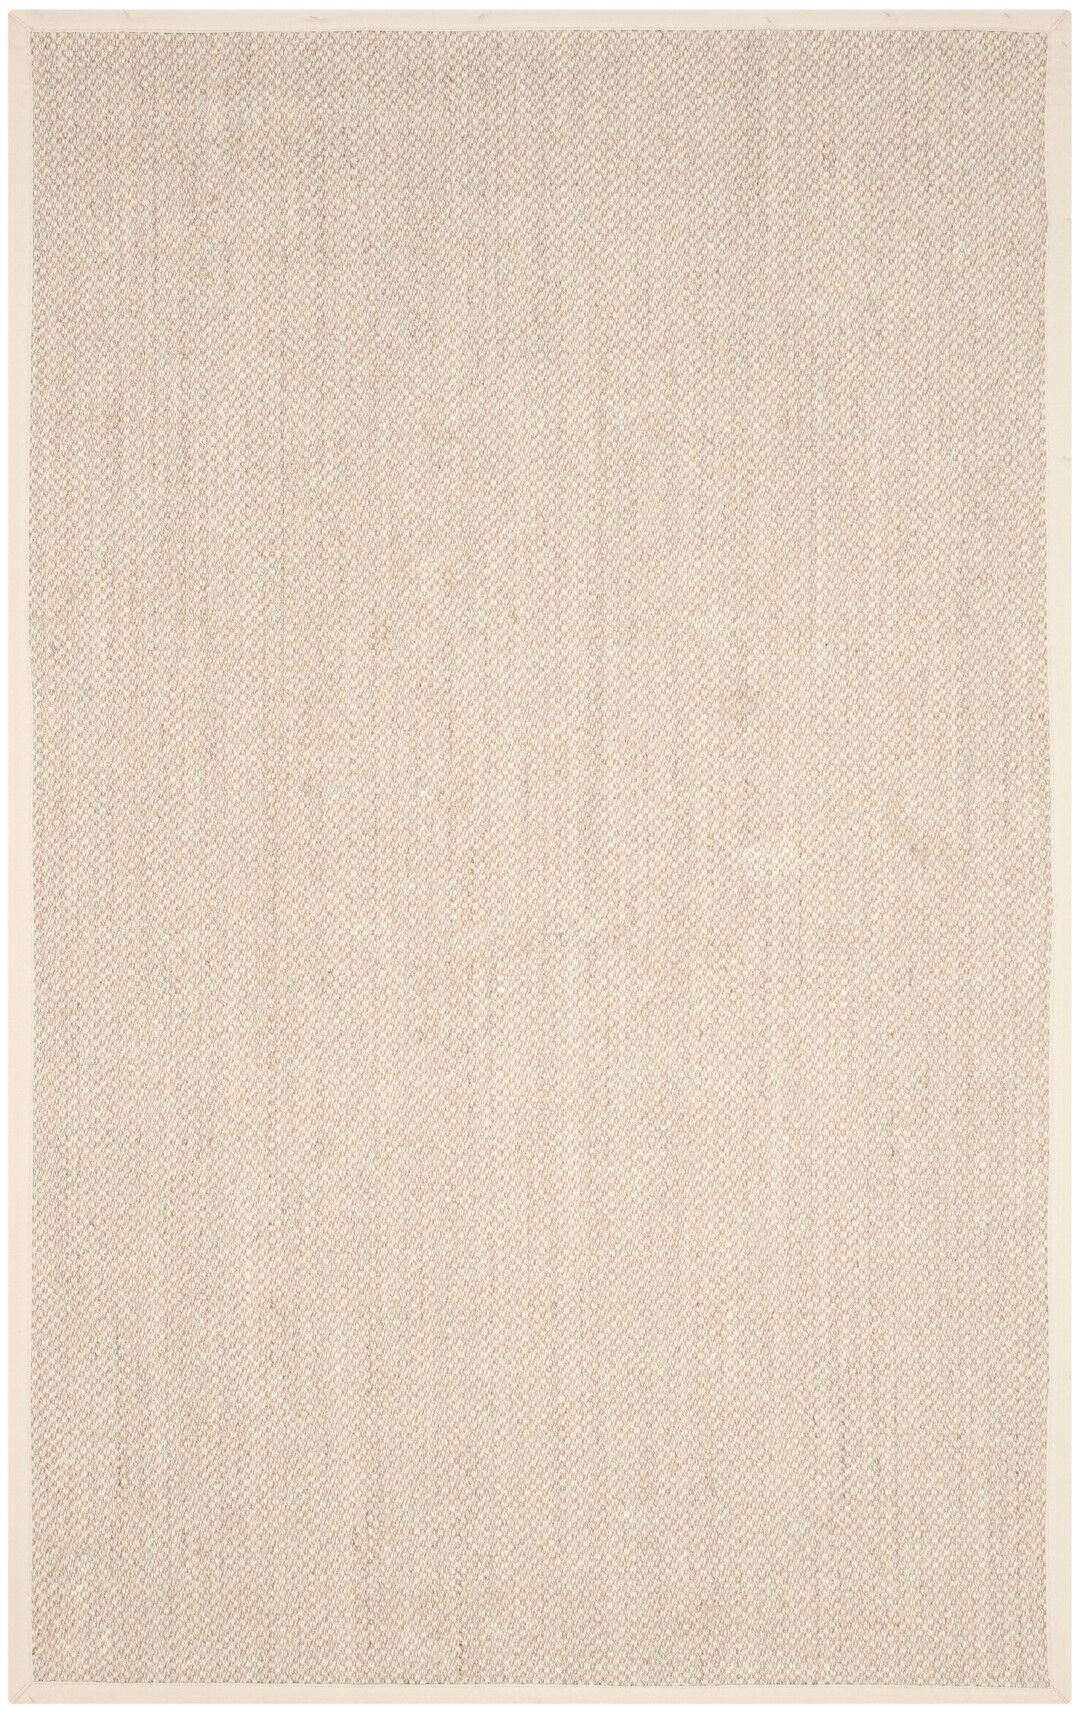 Tallowick Marble/Beige Area Rug Rug Size: Rectangle 4' x 6'